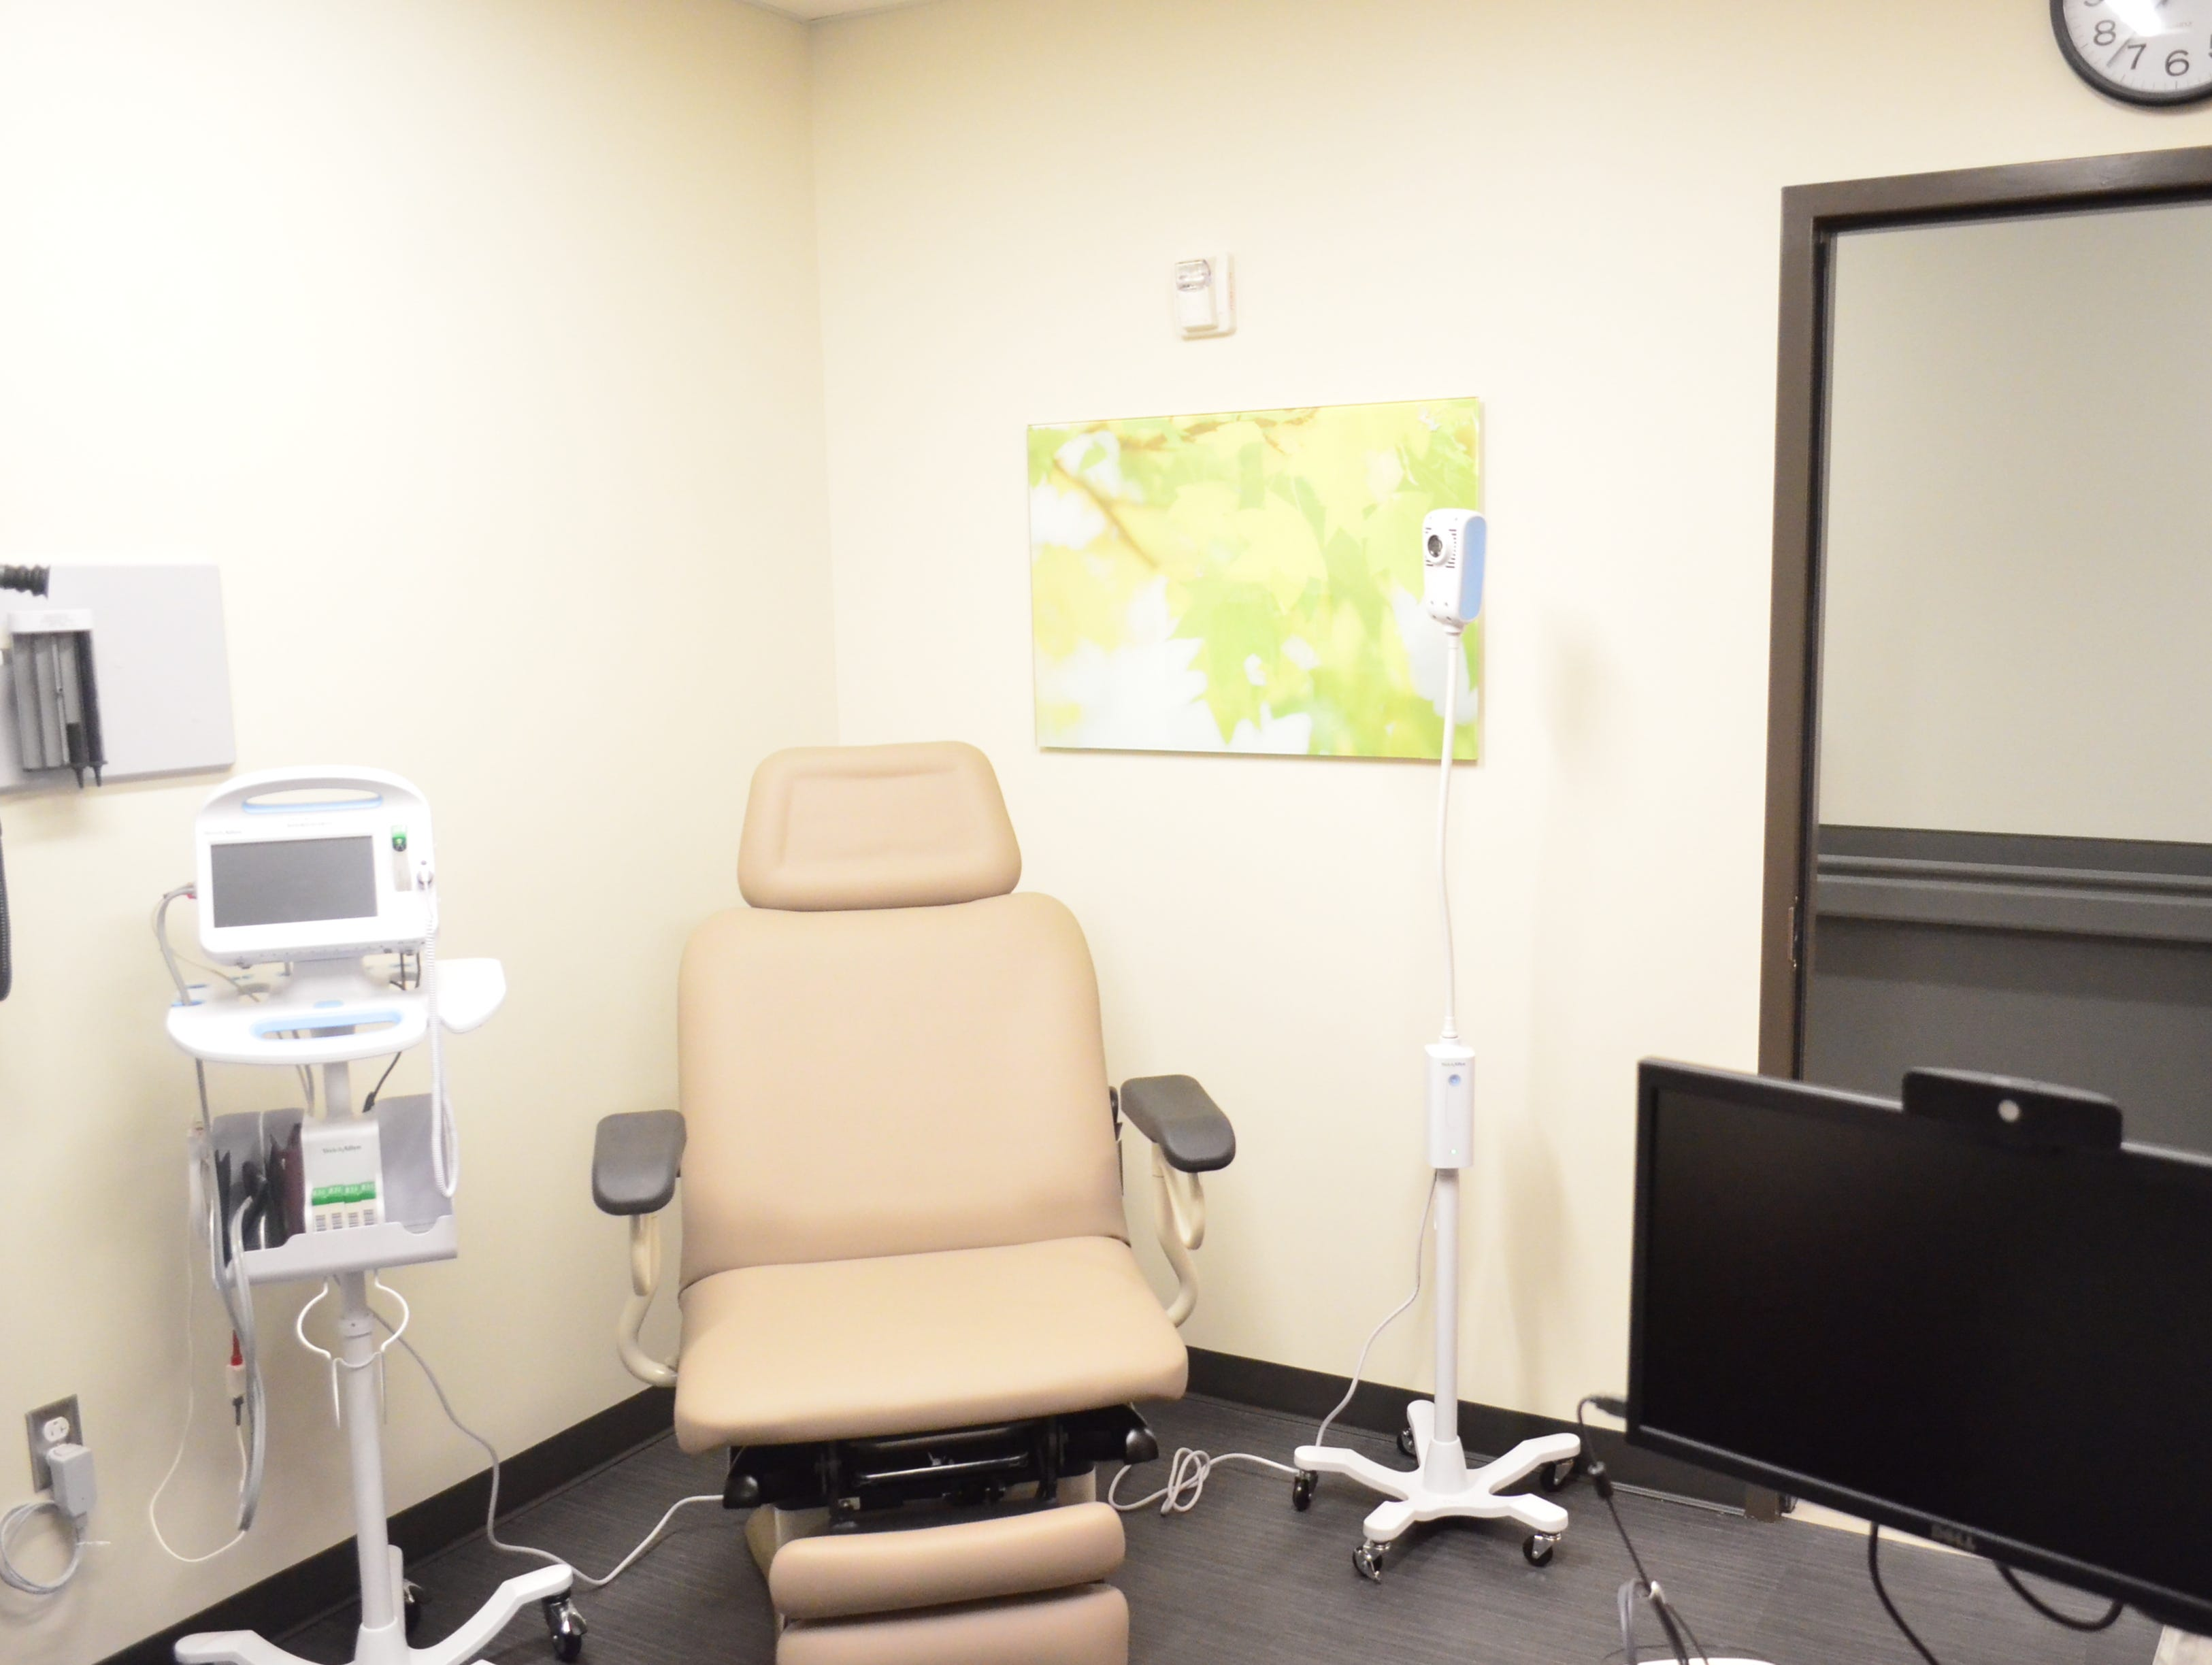 Patient rooms are set up so that the provider can easily talk with the patient face-to-face in a comfortable environment.